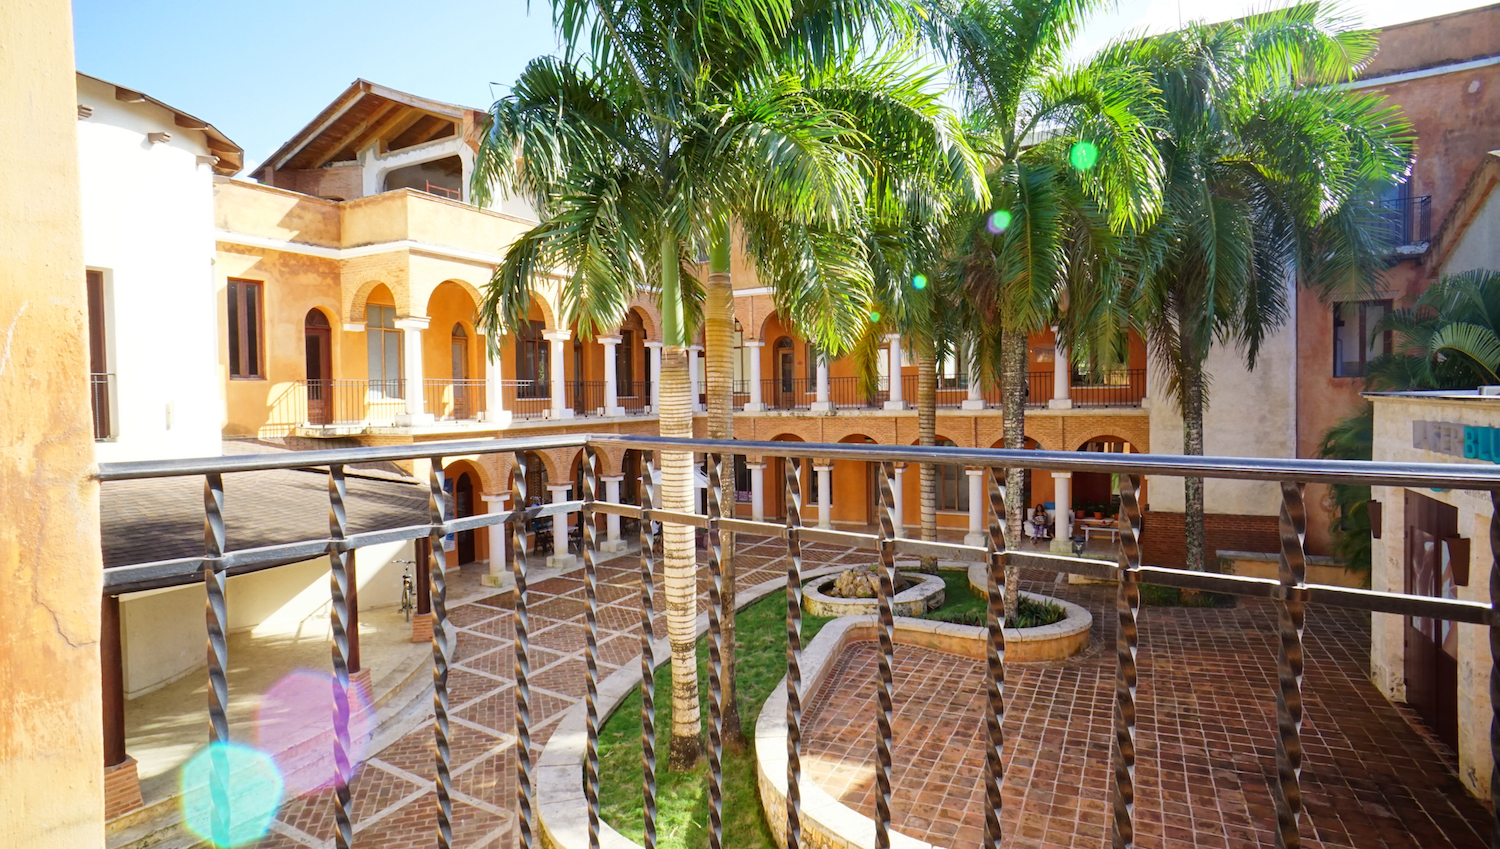 RENTAL : 1 BED / 1 BATH LOFT APARTMENT IN PLAZA COLONIAL